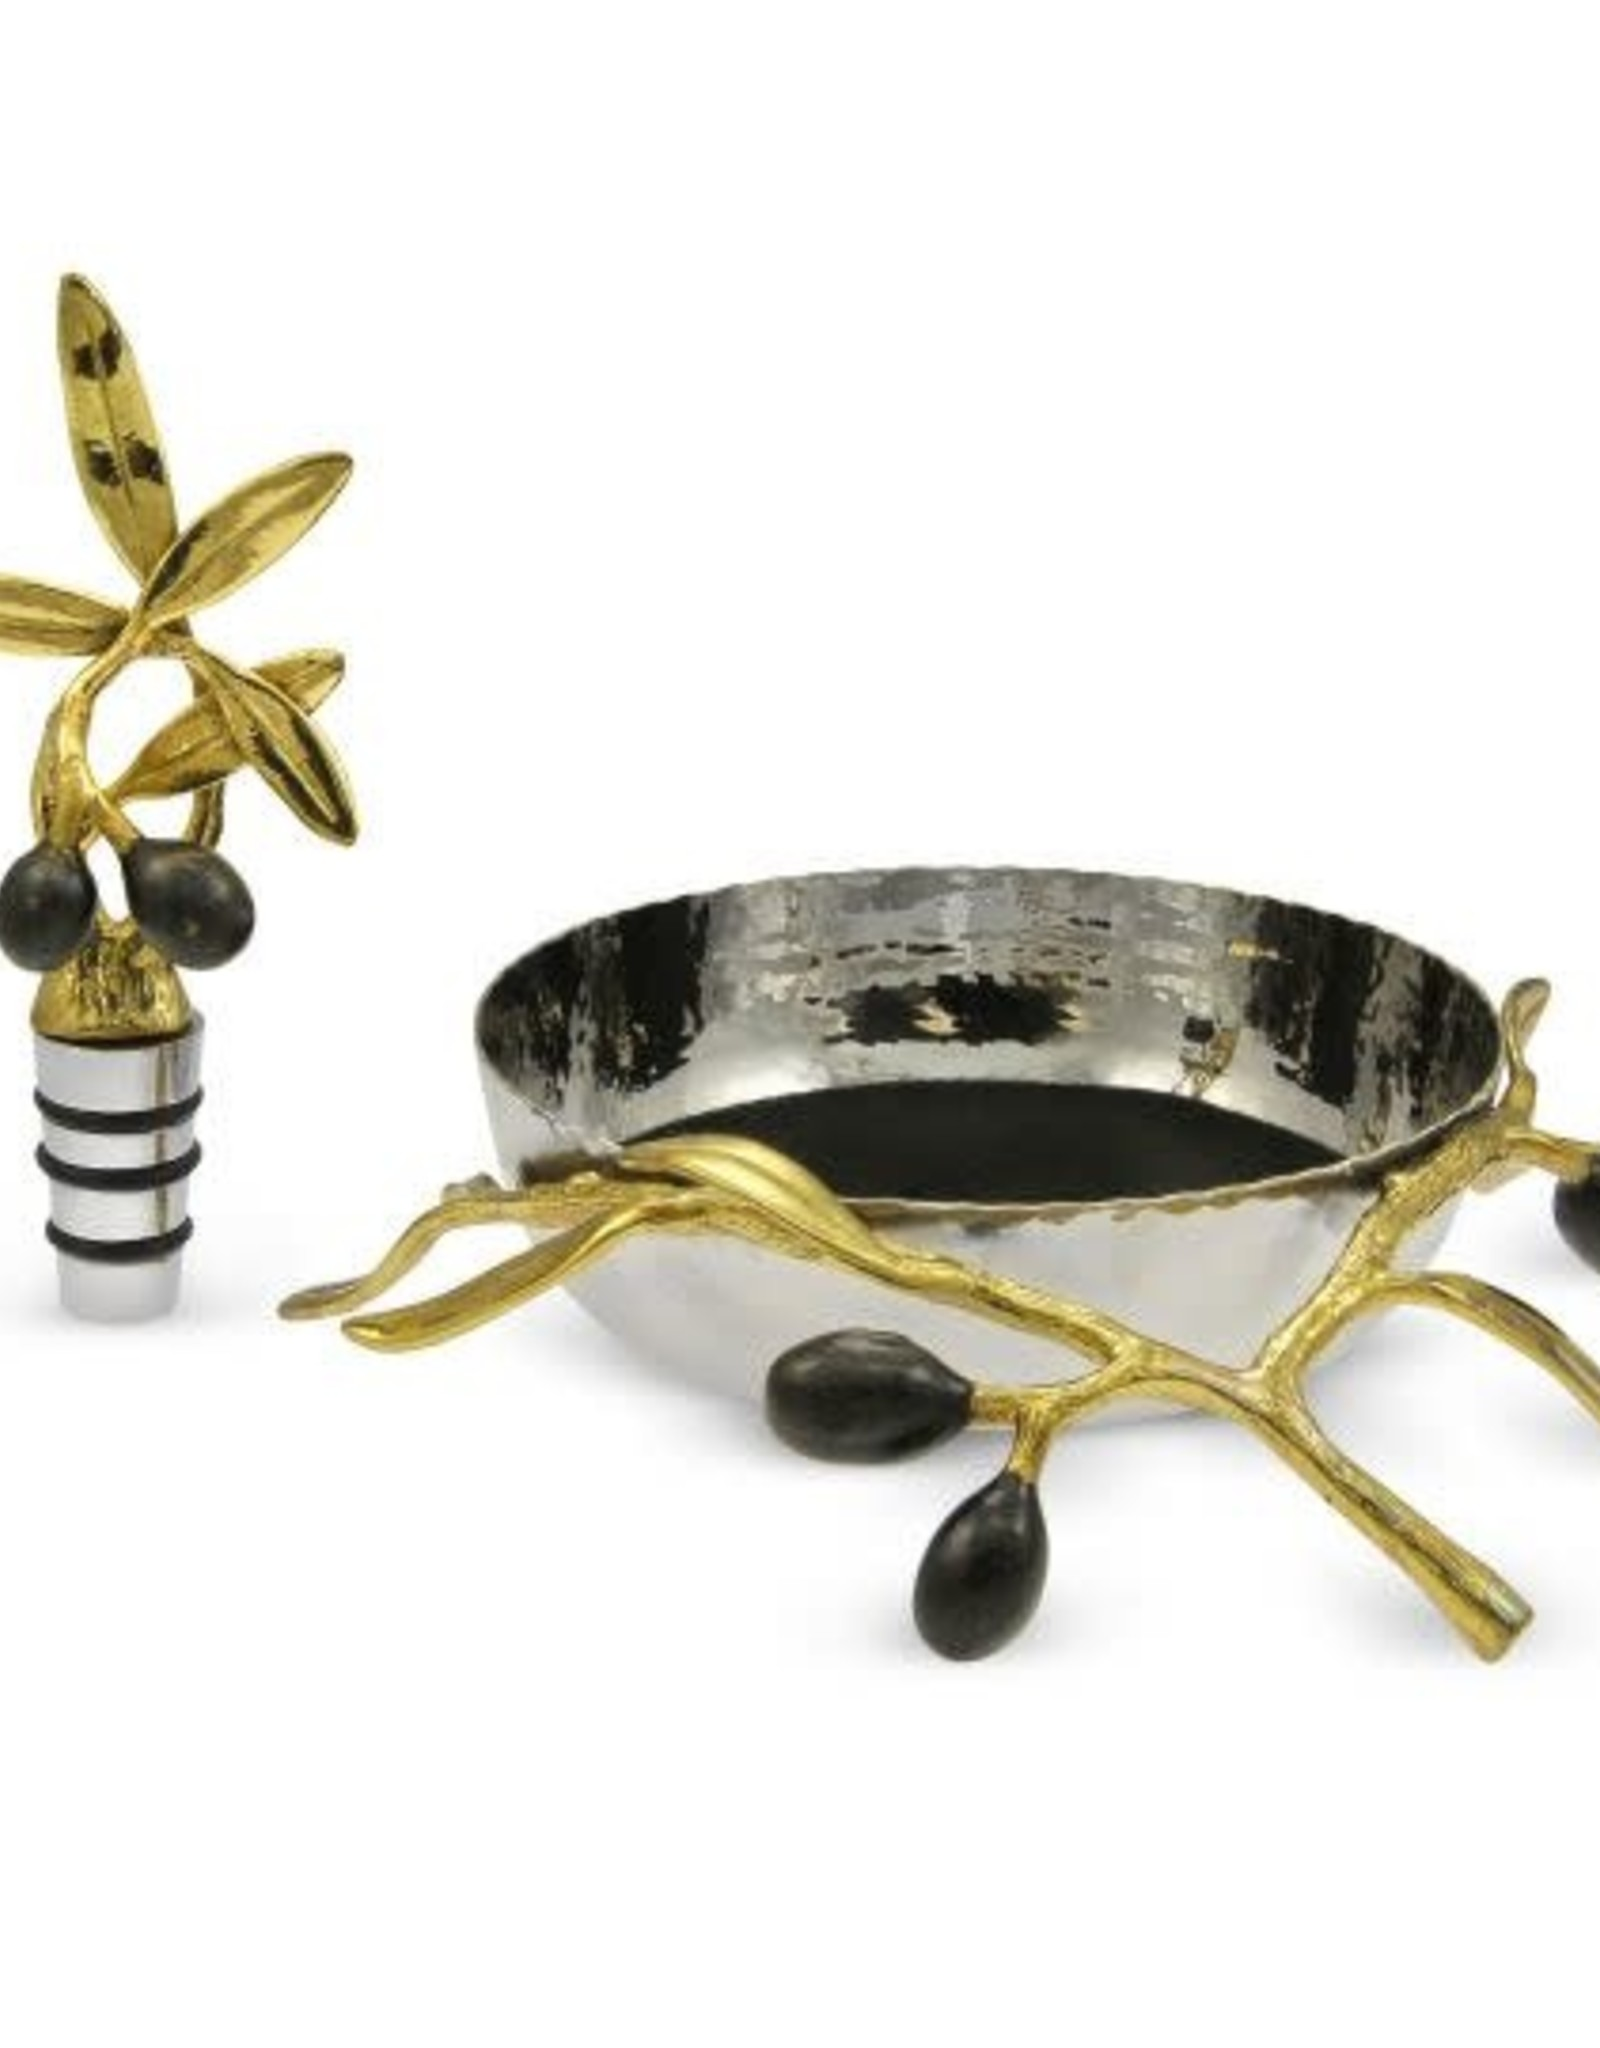 Michael Aram Olive Branch Wine Coaster and Stopper Set